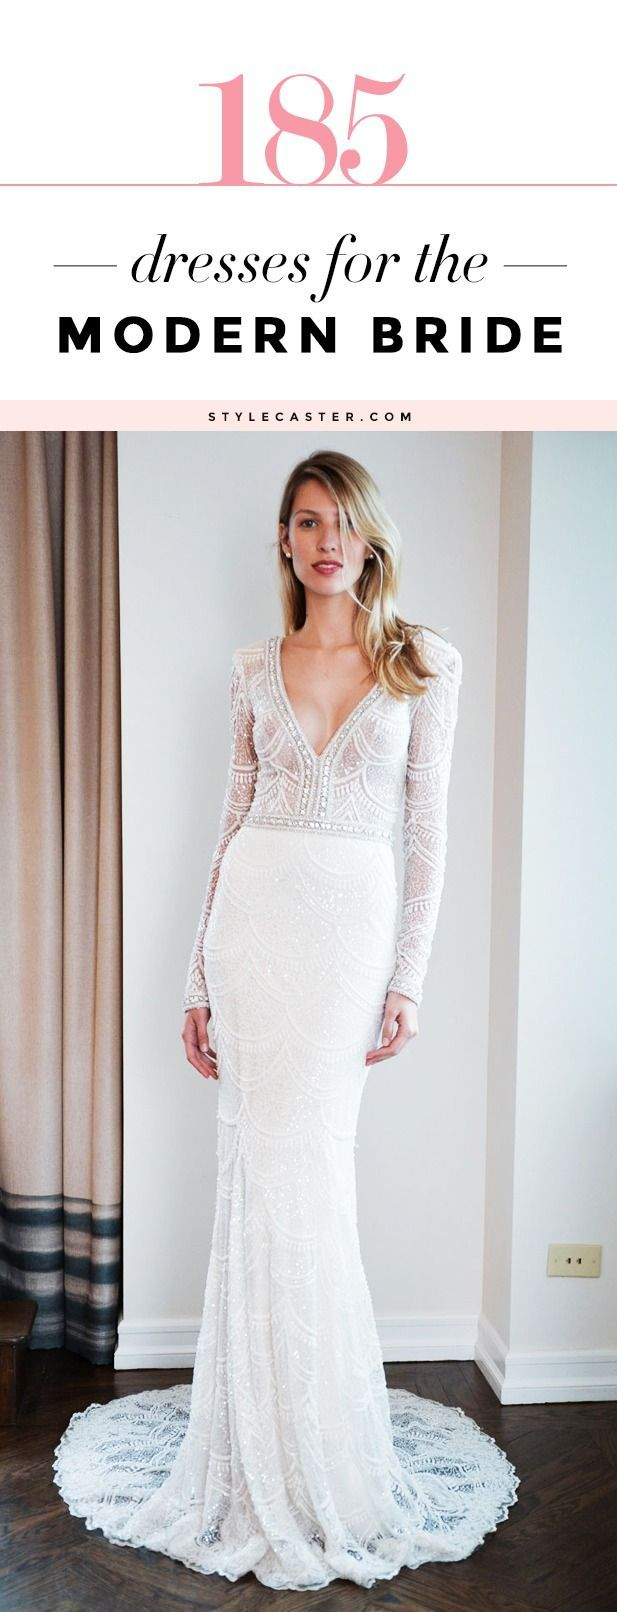 Wedding Dress Handbook: 185 Modern Bridal Looks - This amazing gallery of long-sleeve, backless, short, beaded, boxy, bodycon, and minimalist wedding ensembles (including pants, and skirts) is the ultimate inspiration for any modern bride.: http://stylecaster.com/modern-wedding-dresses/